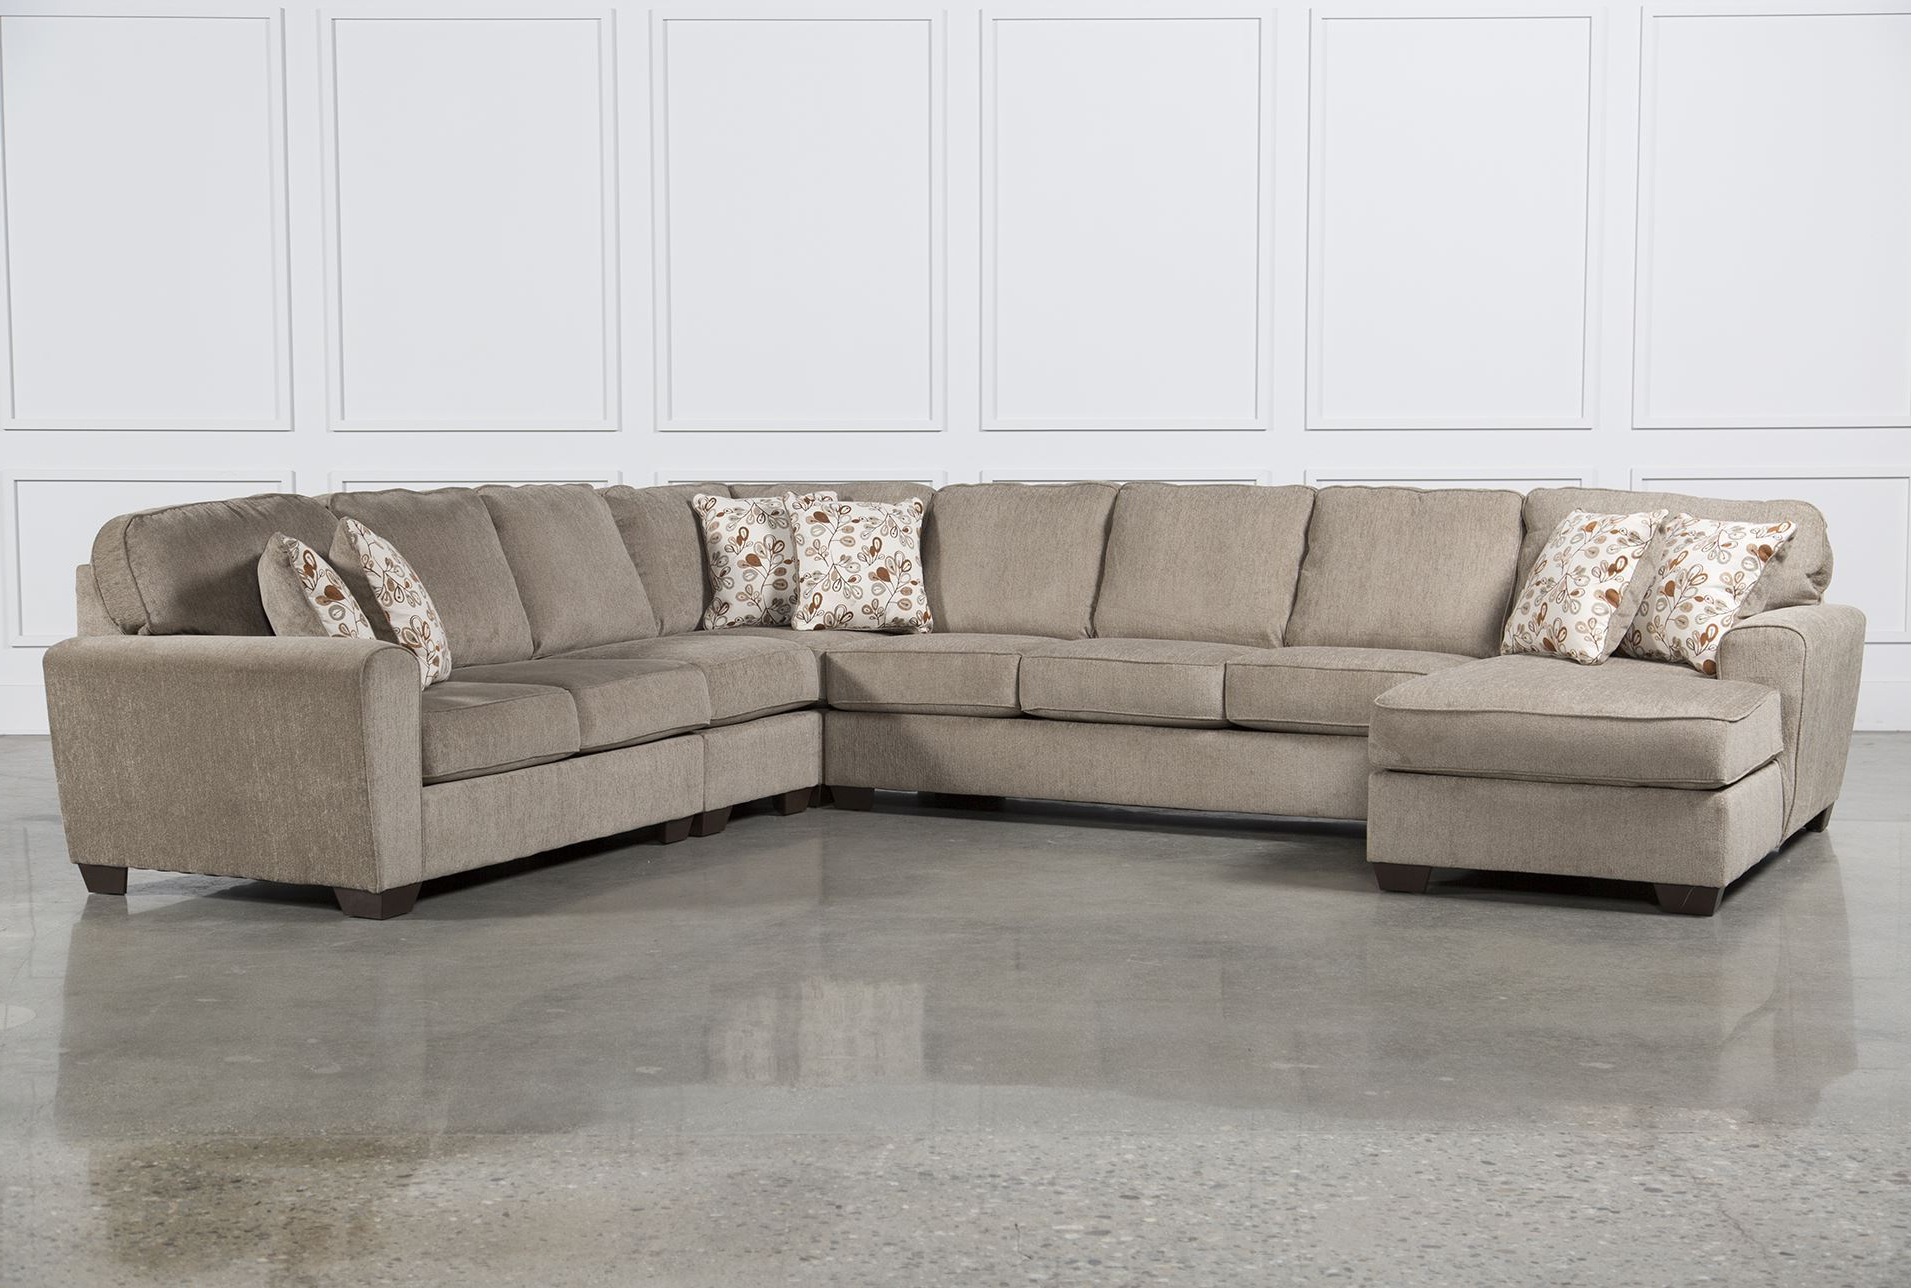 Kerri 2 Piece Sectionals With Raf Chaise With Regard To Fashionable Ideas Of Laf Chaise On Kerri 2 Piece Sectional W Laf Chaise Living (View 11 of 20)